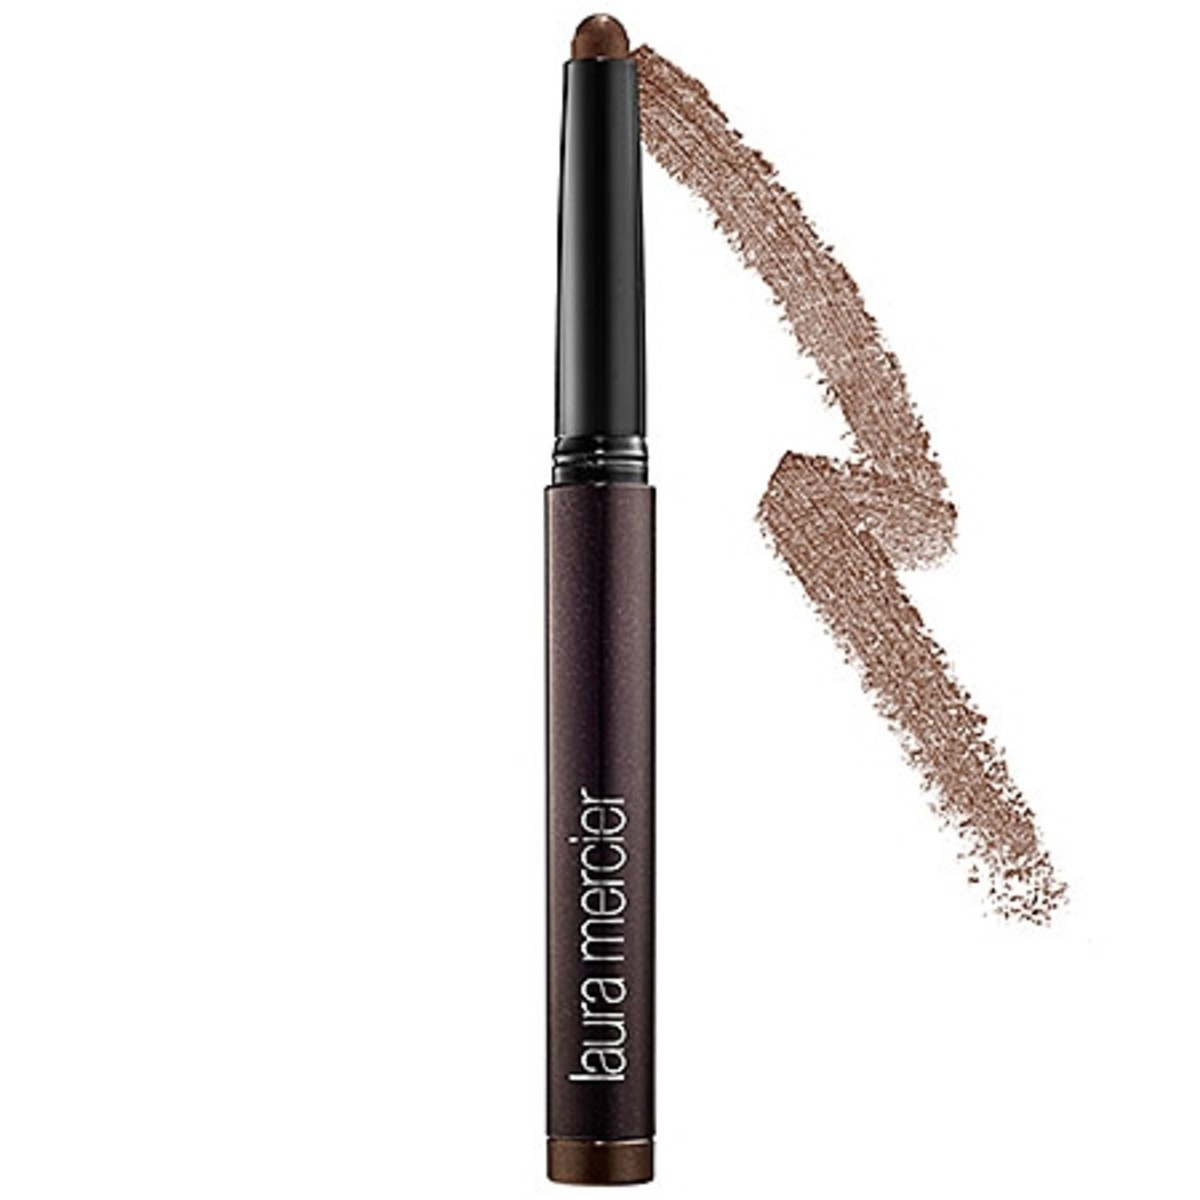 Laura Mercier Caviar Stick Eye Colour in Cocoa